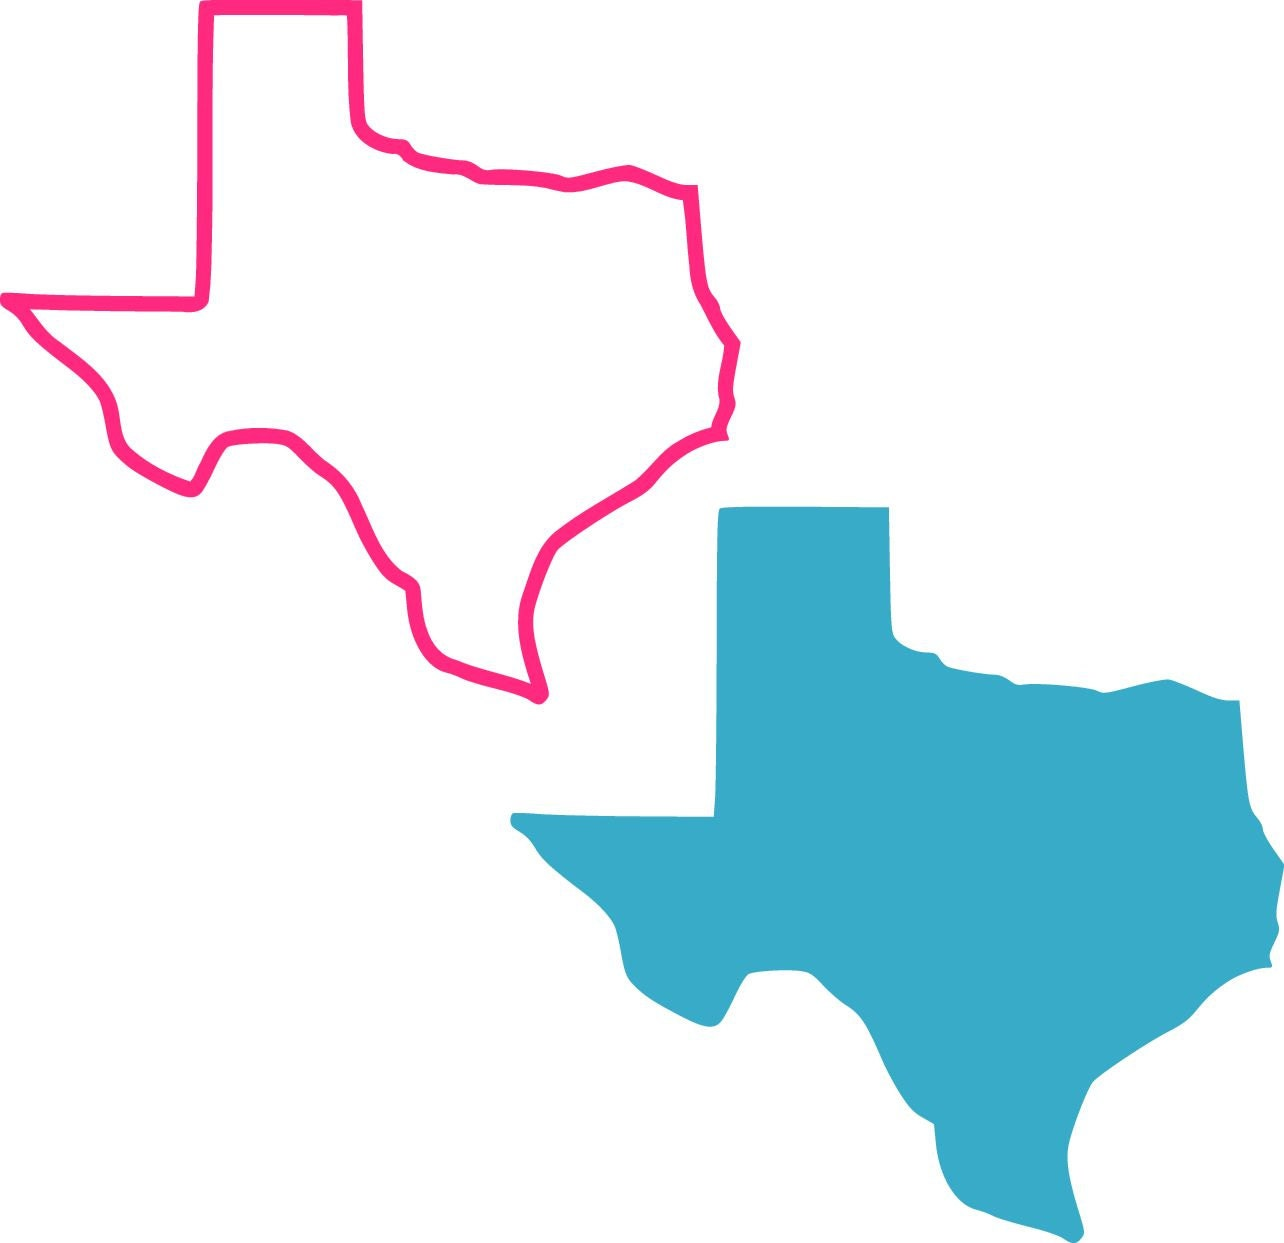 Texas Outline And Solid Svg Studio 3 Dxf Ai Ps And Pdf